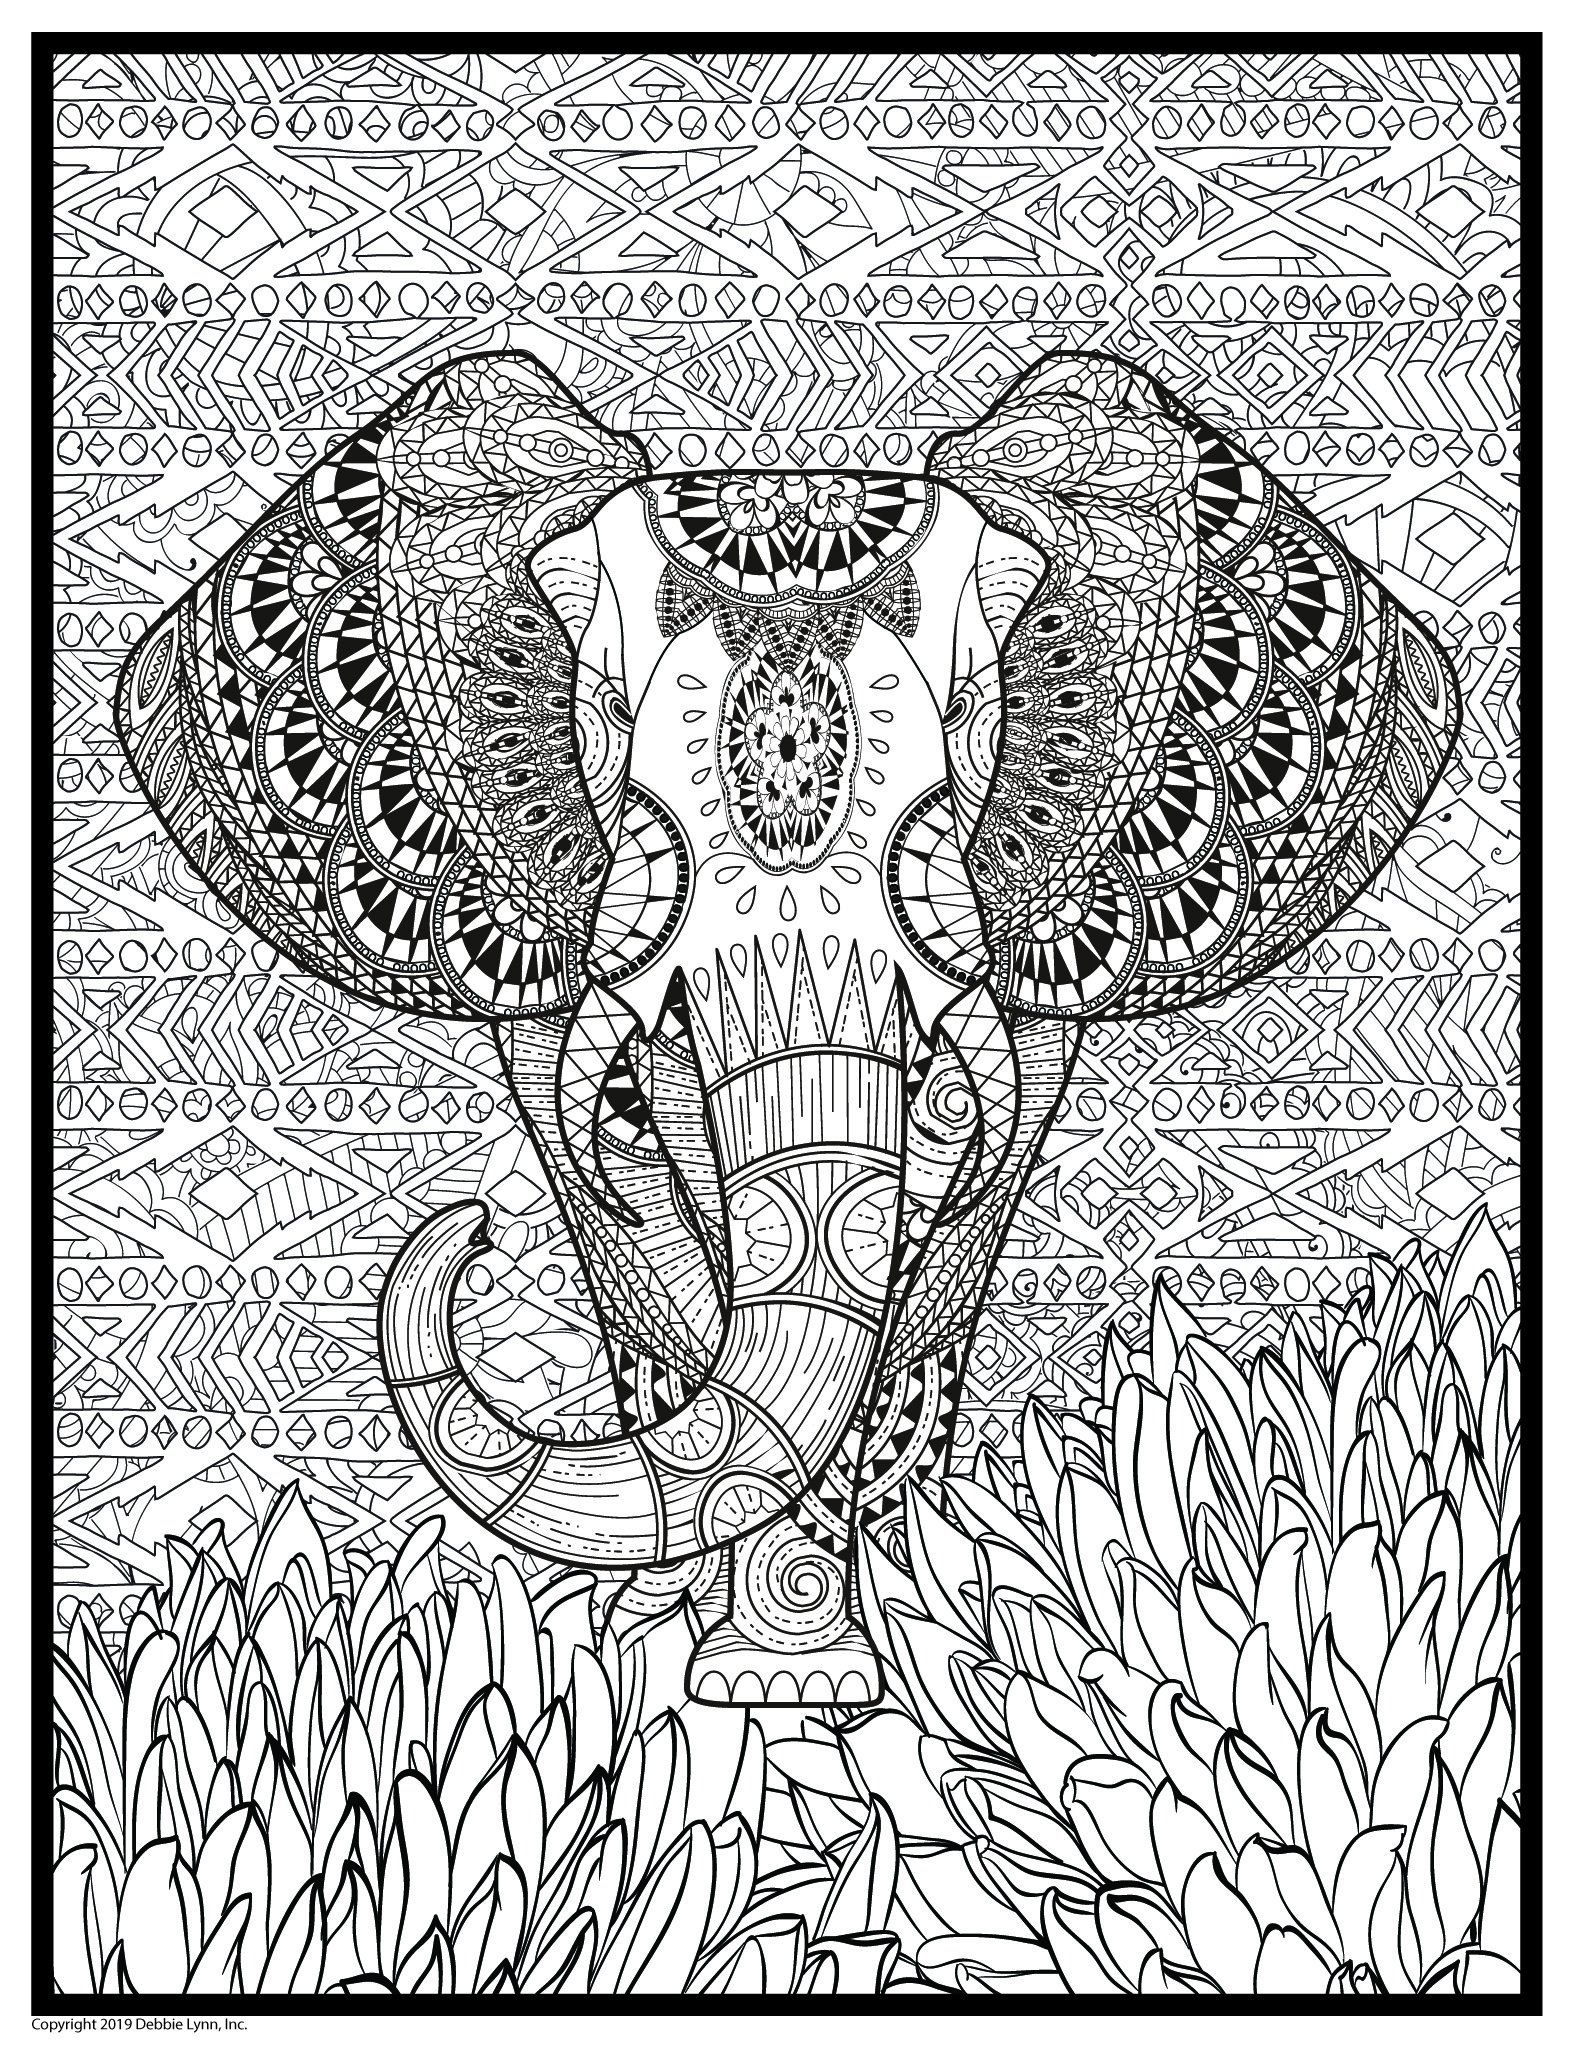 Super Huge 48 X 63 Coloring Poster Coloring Posters Animal Coloring Books Elephant Coloring Page